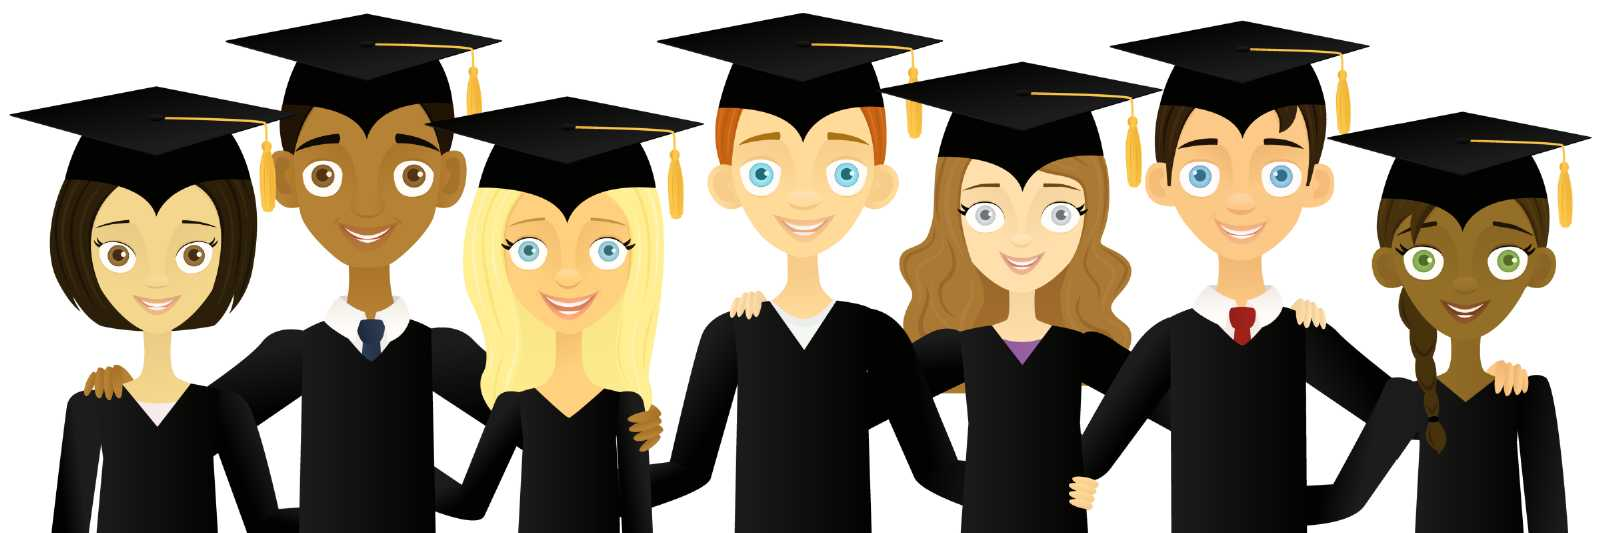 Clip Art Senior High School Clipart.